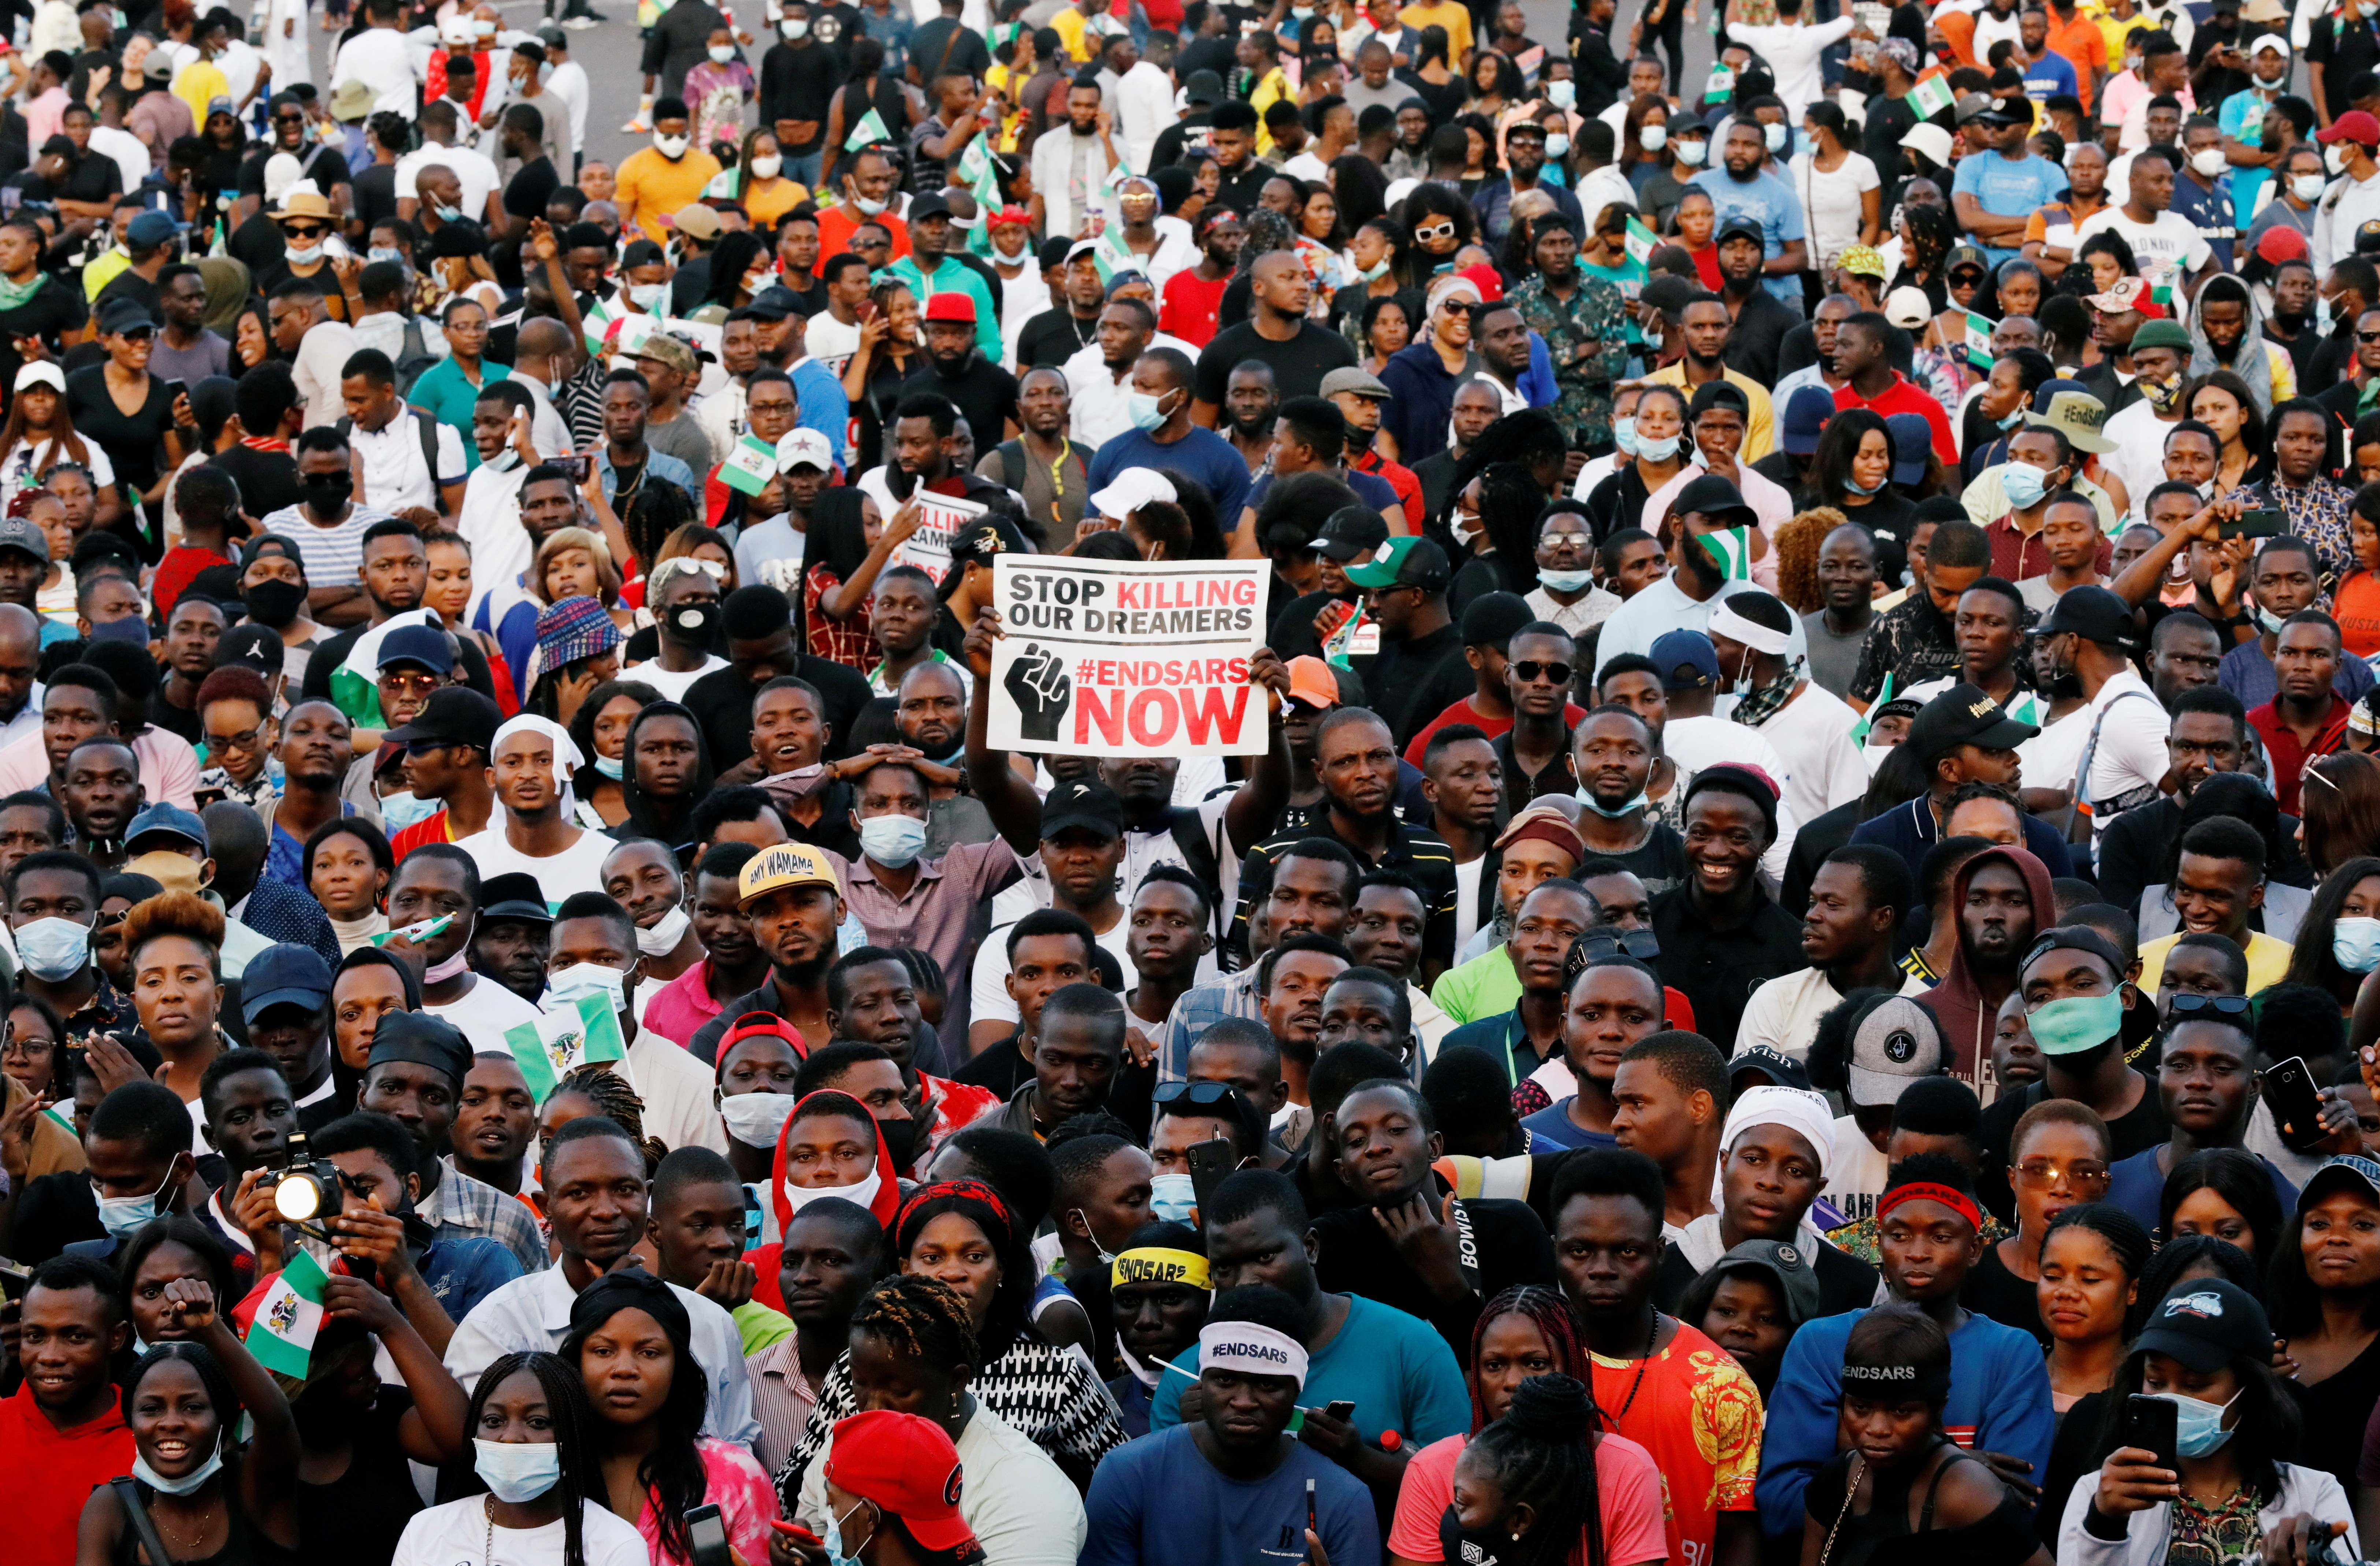 Demonstrators gather during a protest over alleged police brutality in Lagos, Nigeria October 17, 2020